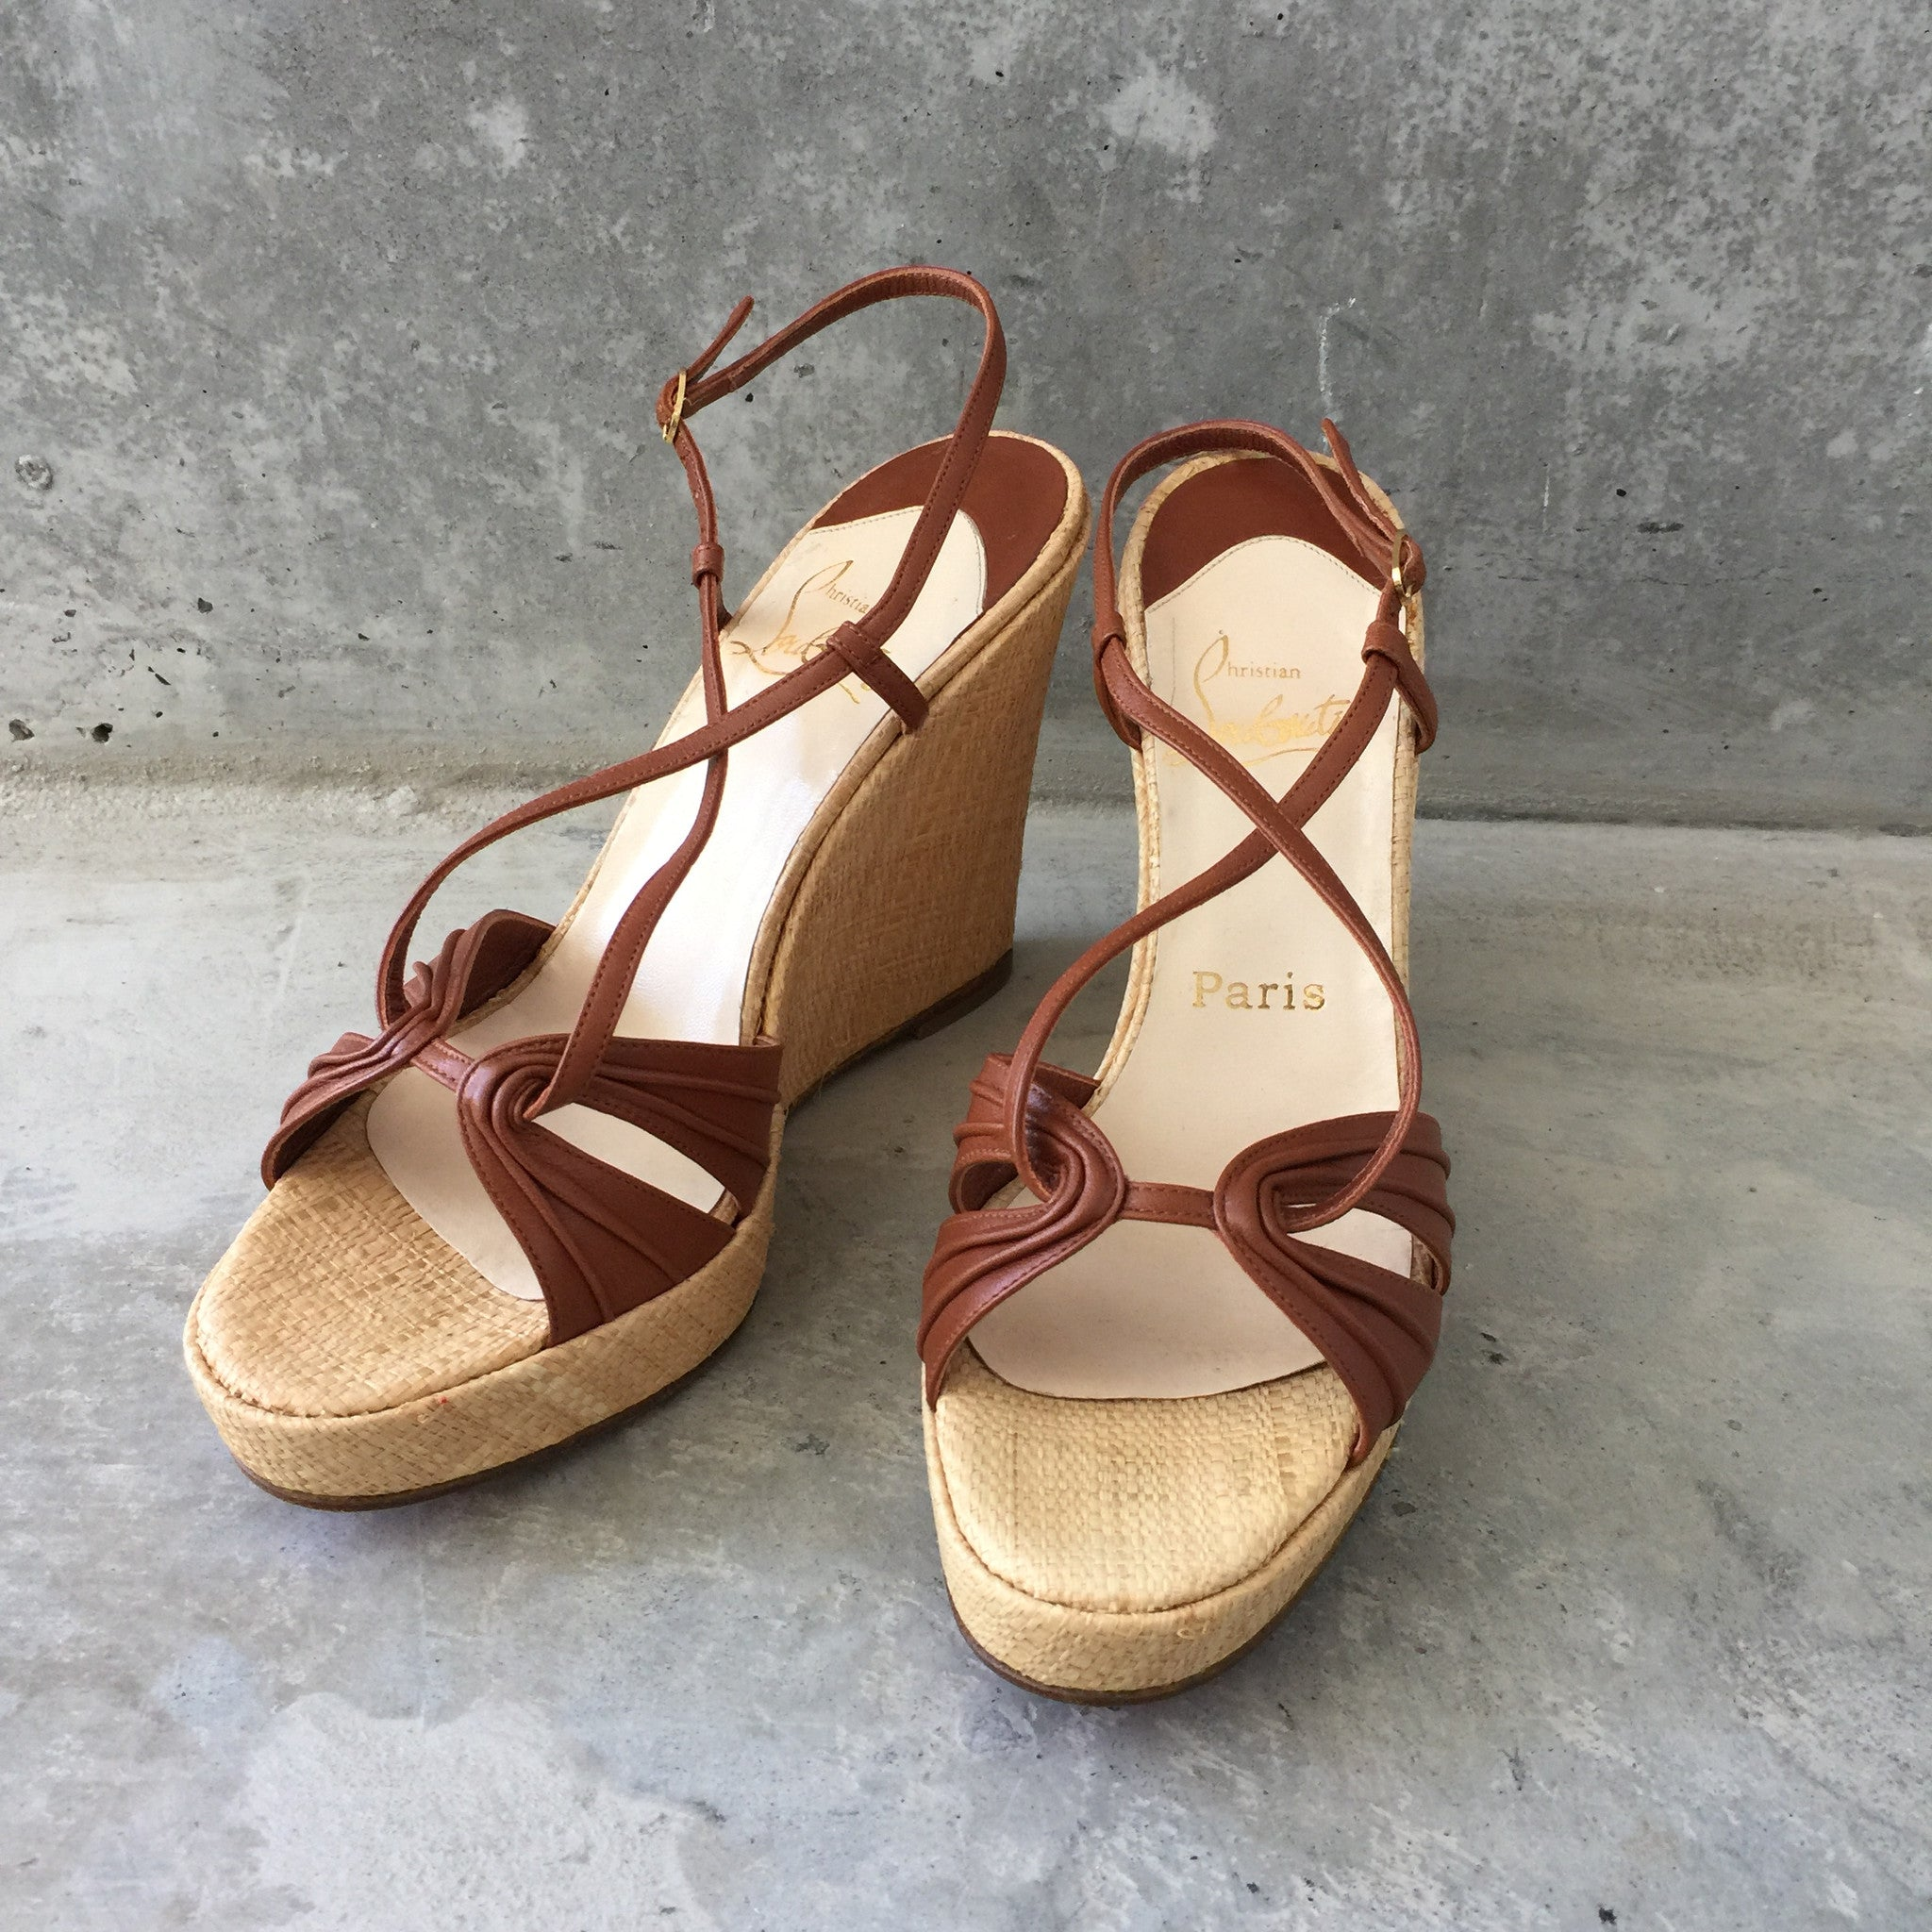 Authentic CHRISTIAN LOUBOUTIN Wedges Size 8.5